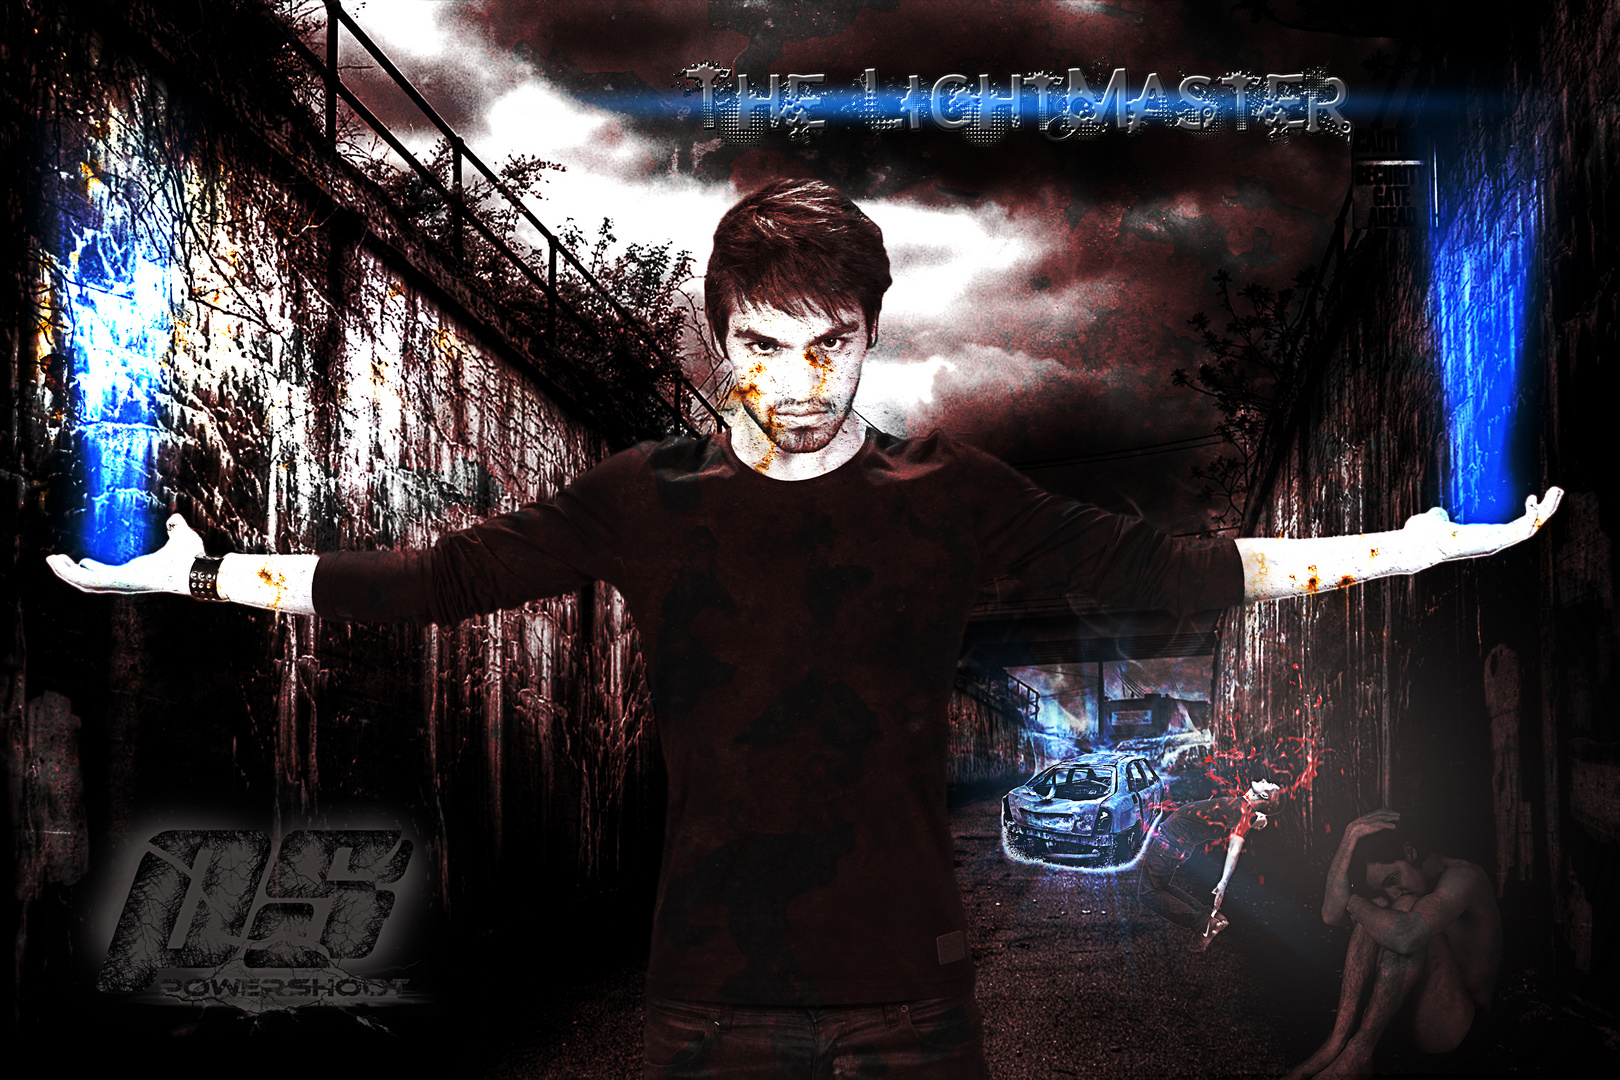 The Lightmaster